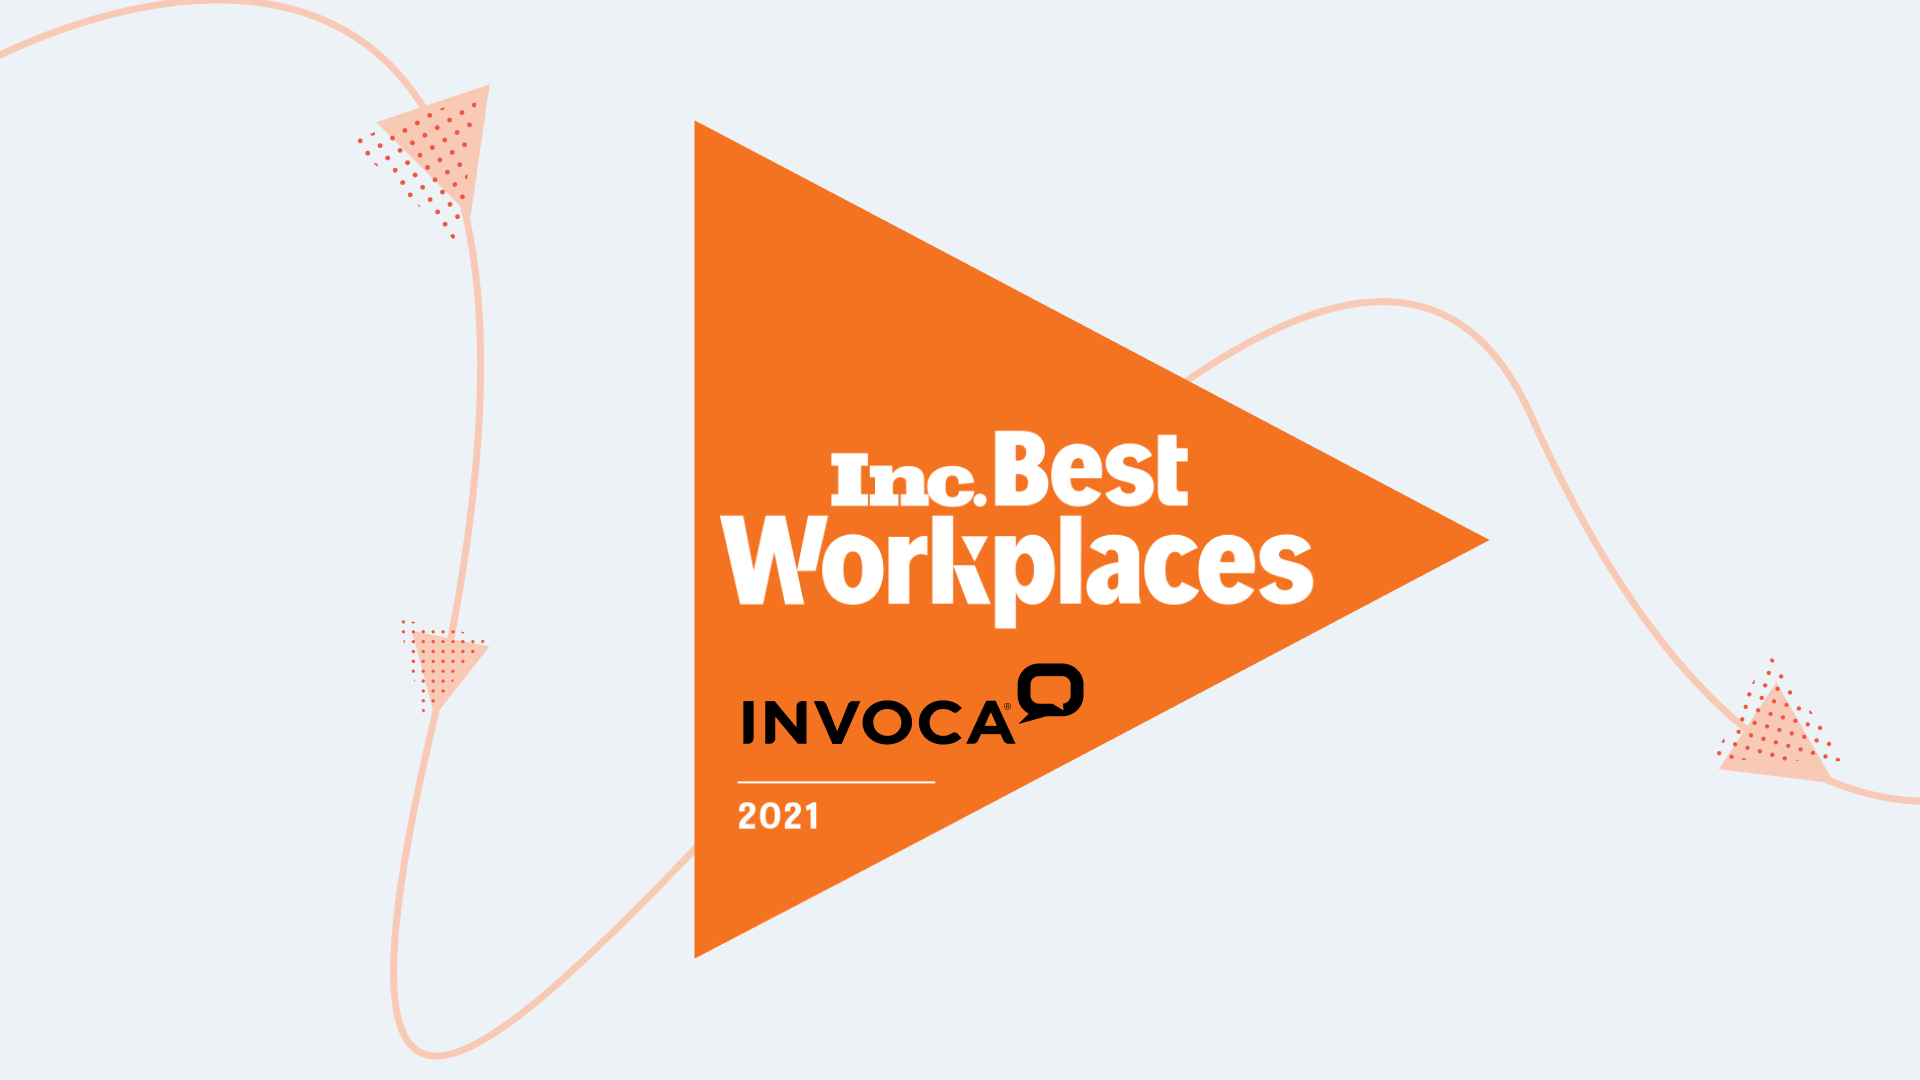 Invoca Named an Inc. Best Workplace for a Fourth Consecutive Year